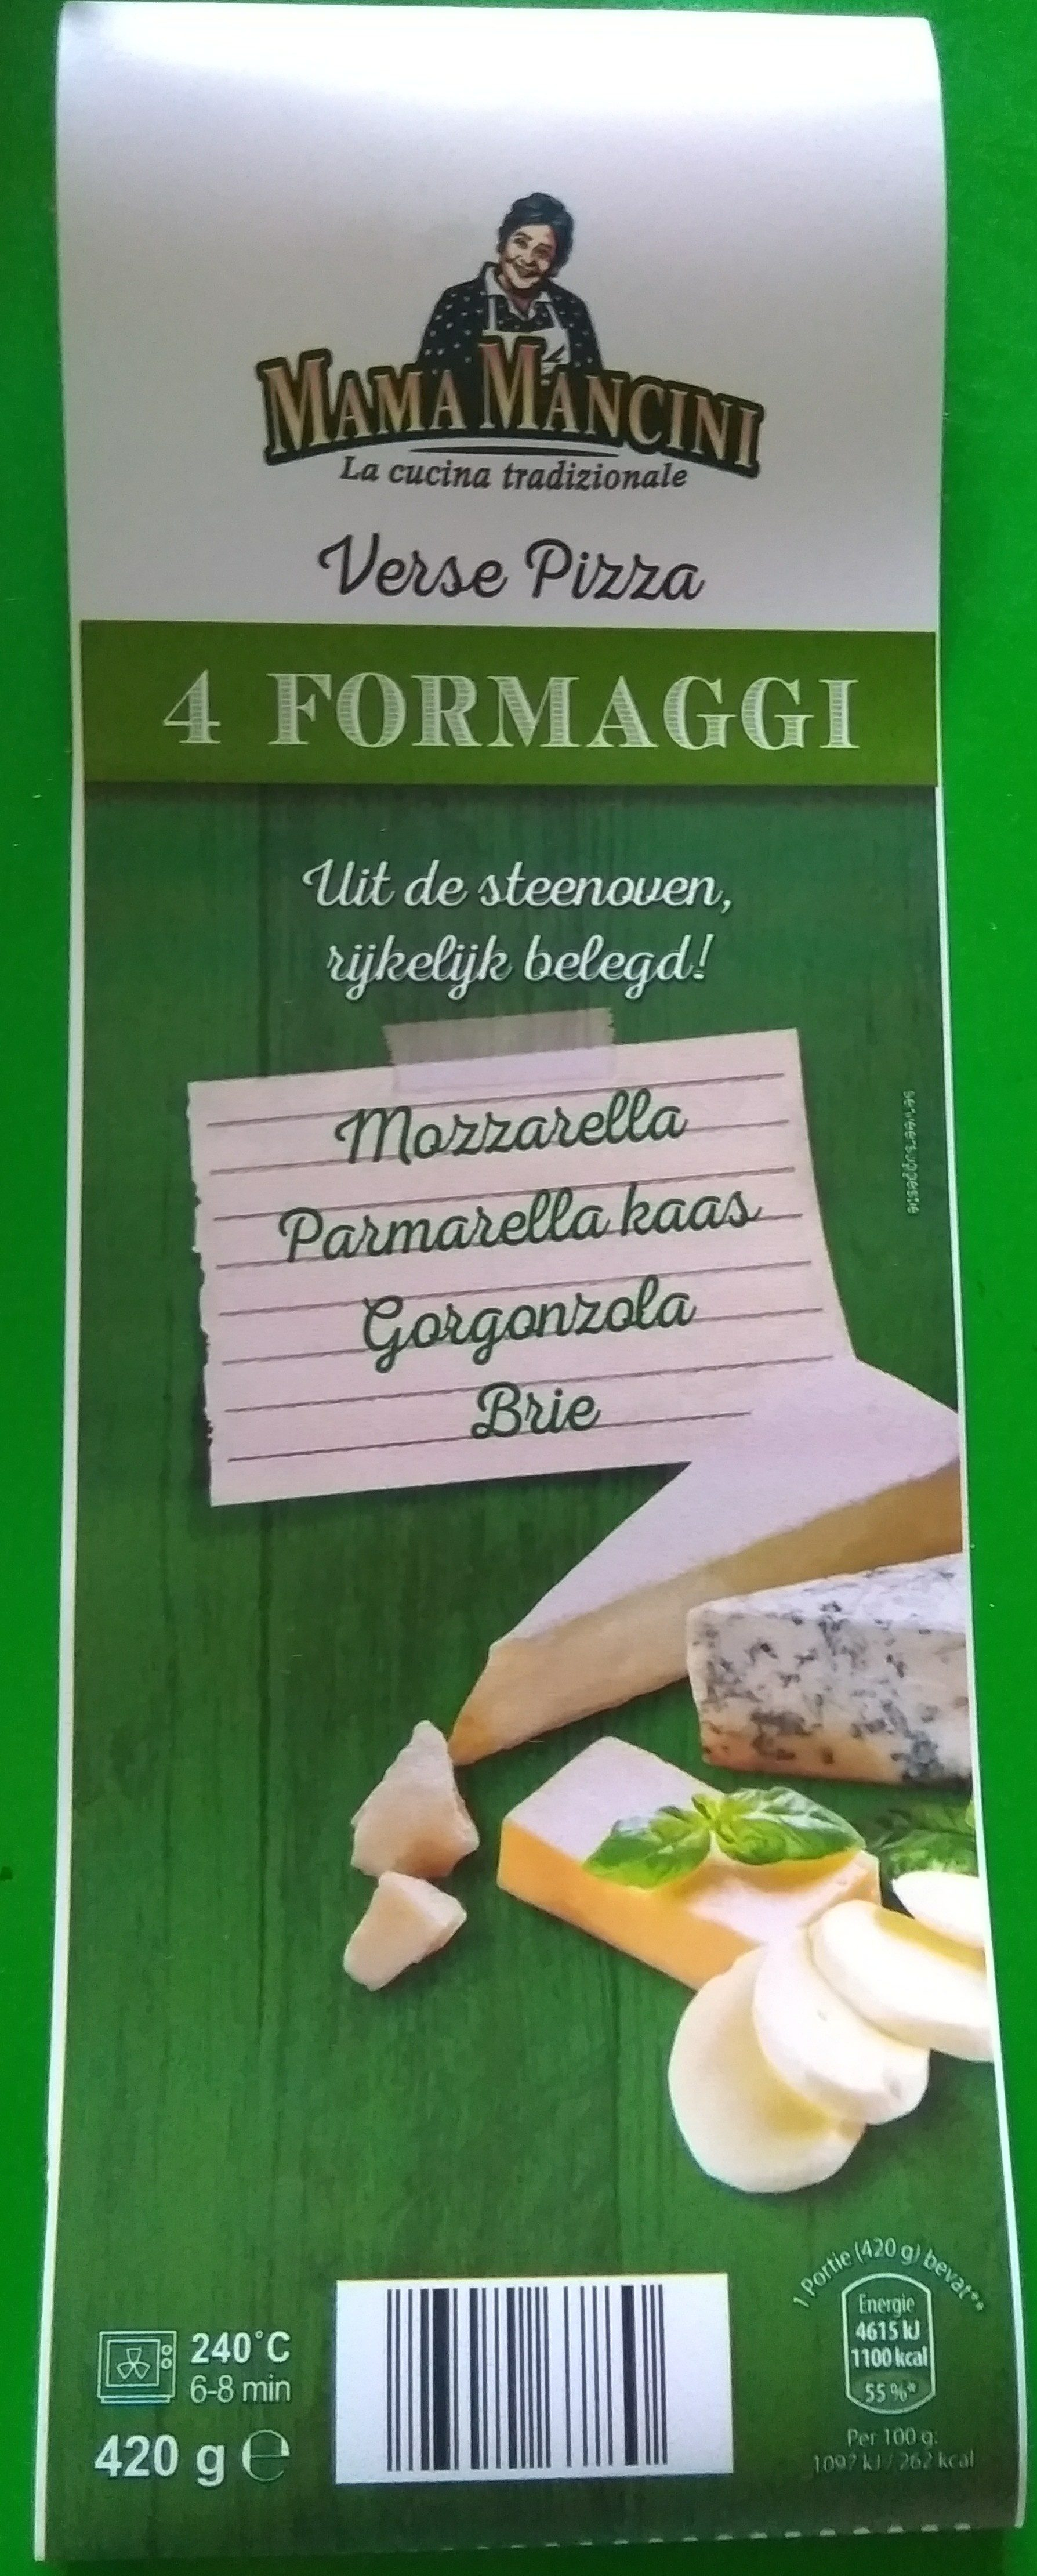 Verse Pizza 4 Formaggi - Product - nl